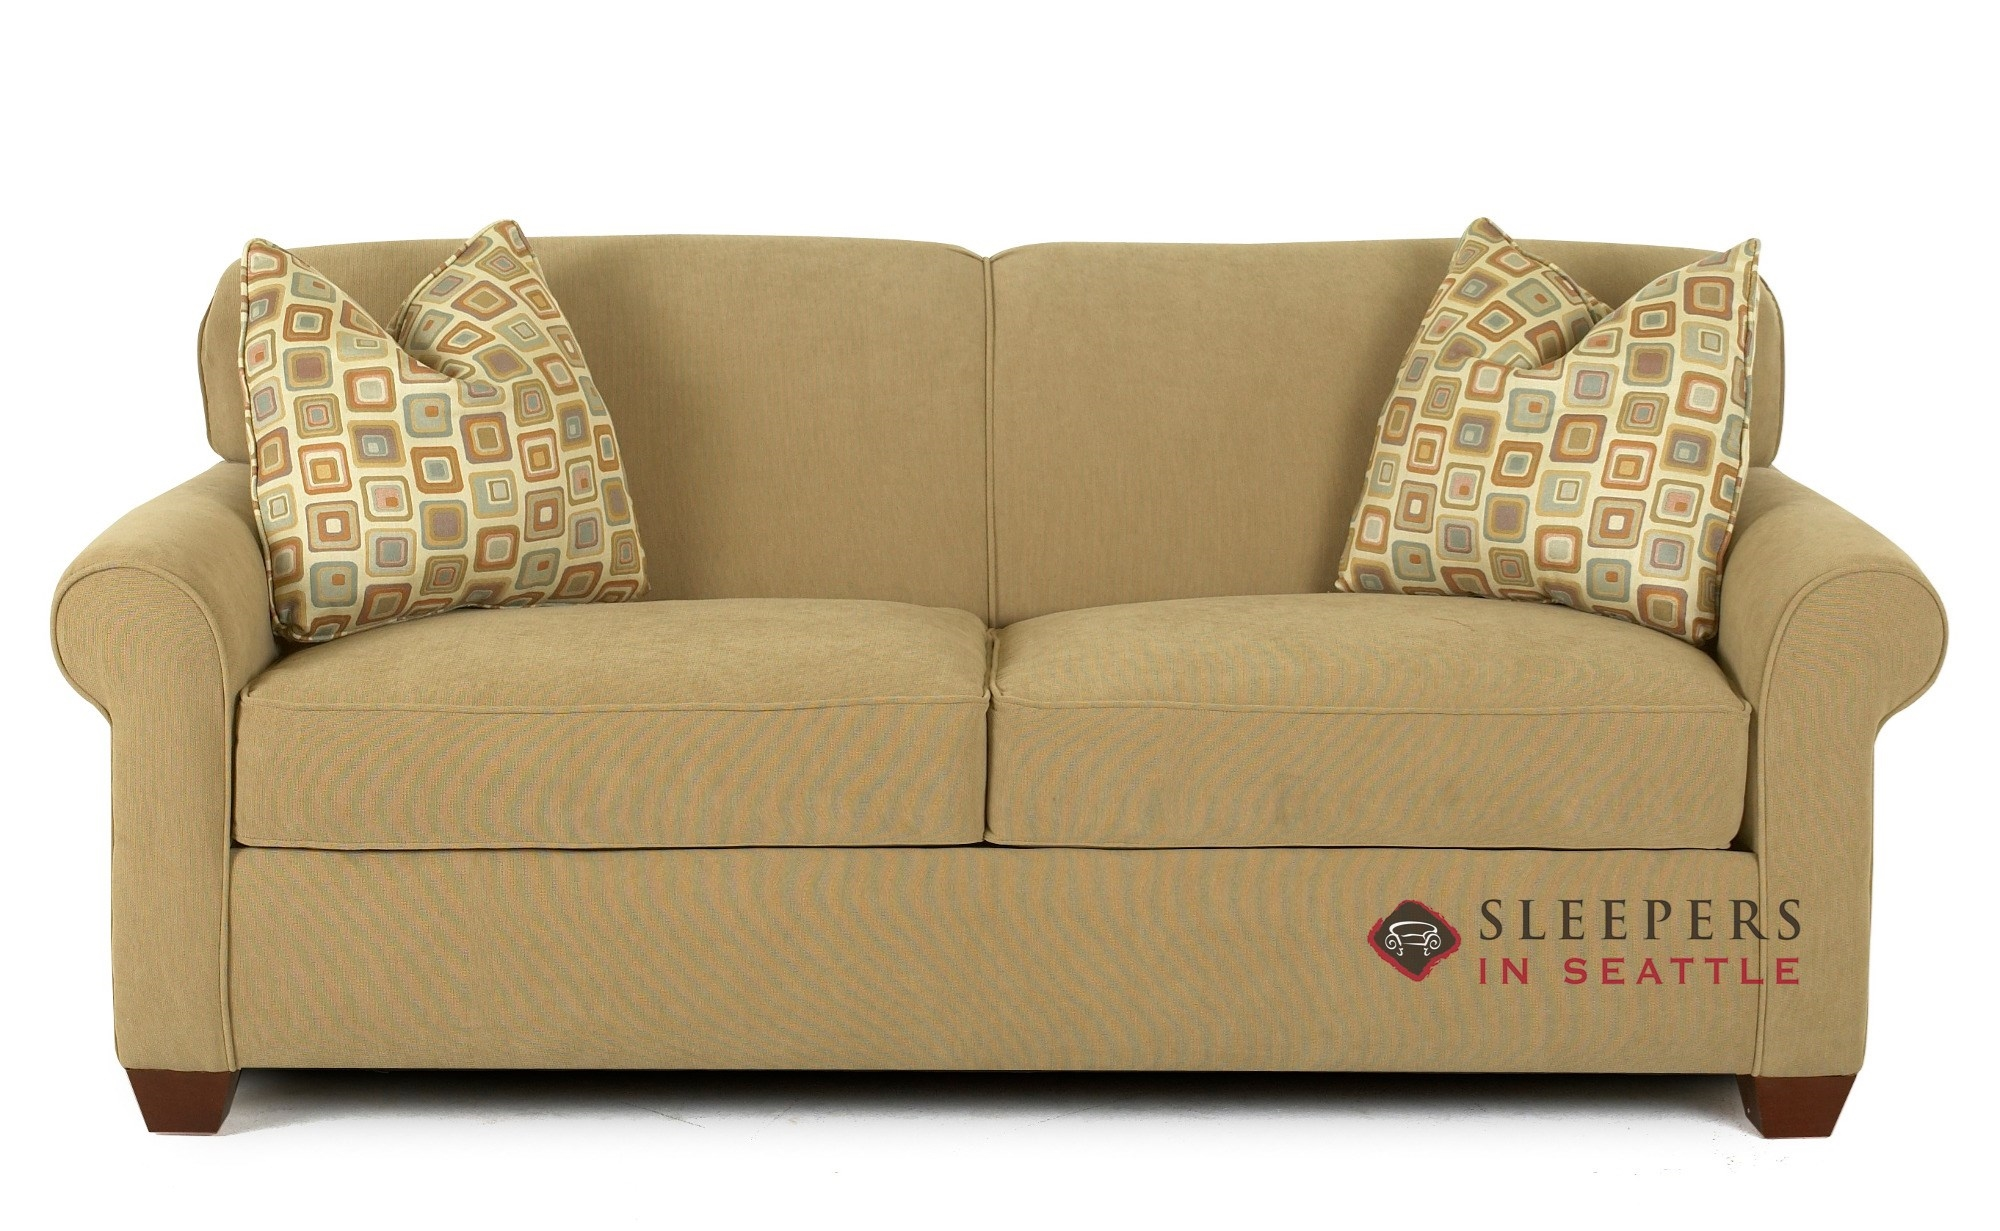 full size sofa beds full size sleeper sofas sleepersinseattle com rh sleepersinseattle com  full sleeper sofa bed